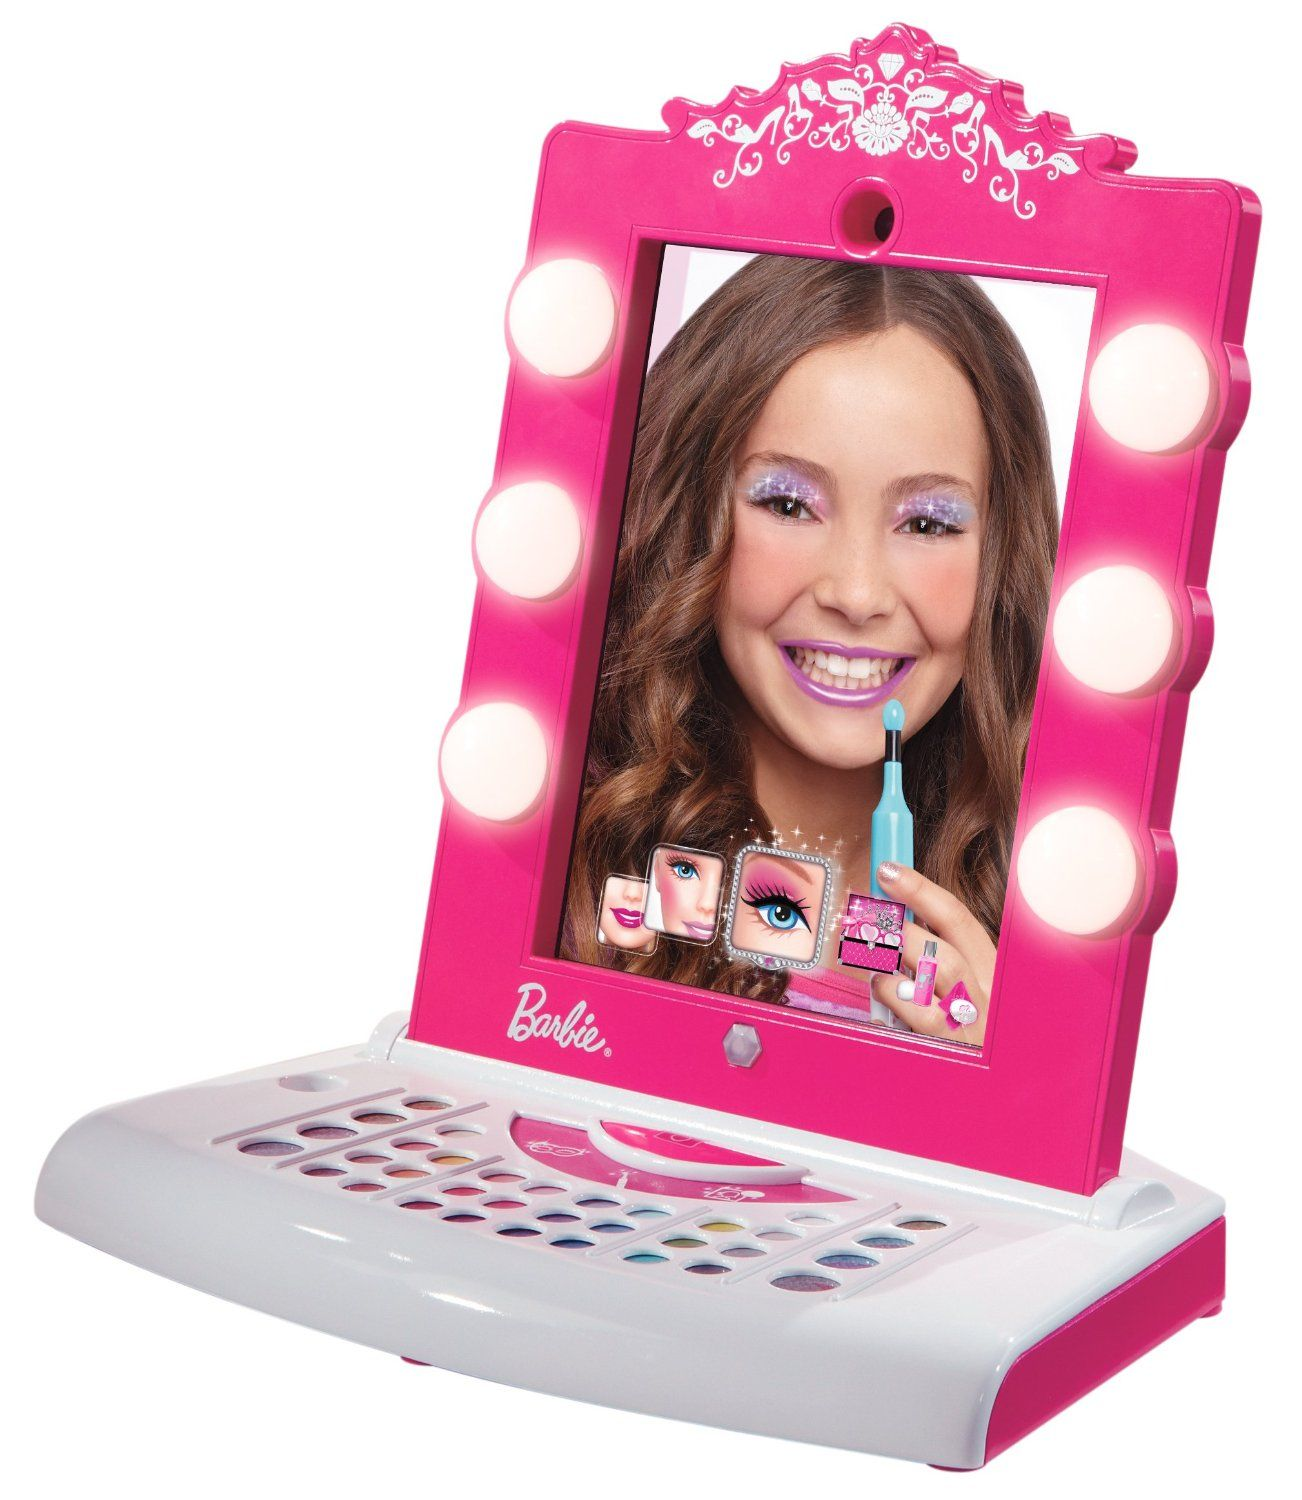 The Totally Awesome Barbie Digital Makeover Mirror For Girls Birthday Presents For Girls Little Girl Toys Presents For Girls